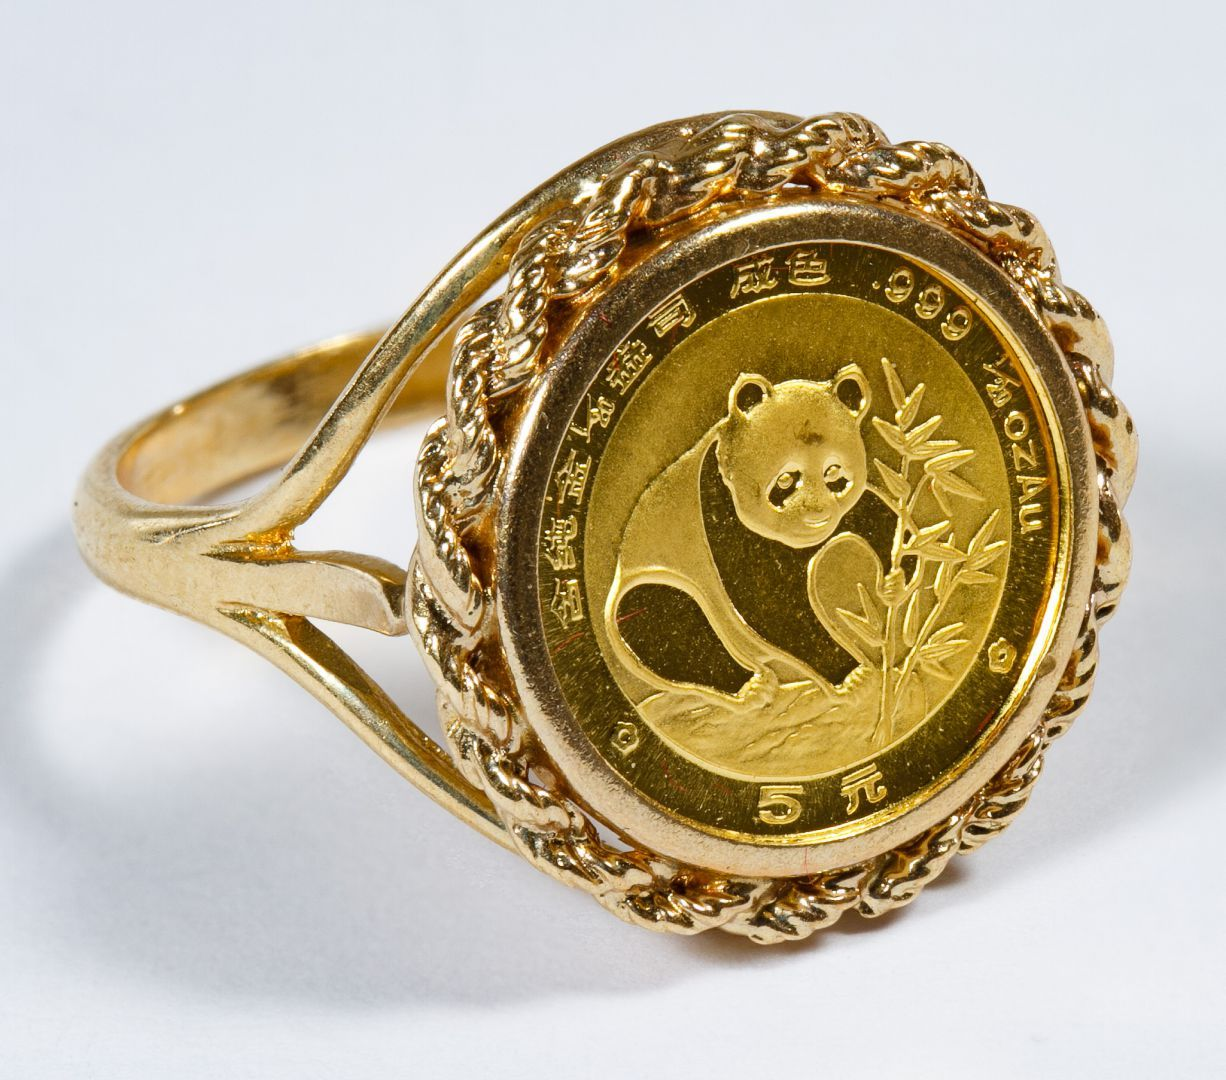 Lot 332 Chinese Gold Panda Coin Mounted In 14k Gold Ring 1 20 Oz Gold Coin In A Gold Setting Marked 999 Gold Coin Ring Buy Gold And Silver 14k Gold Ring